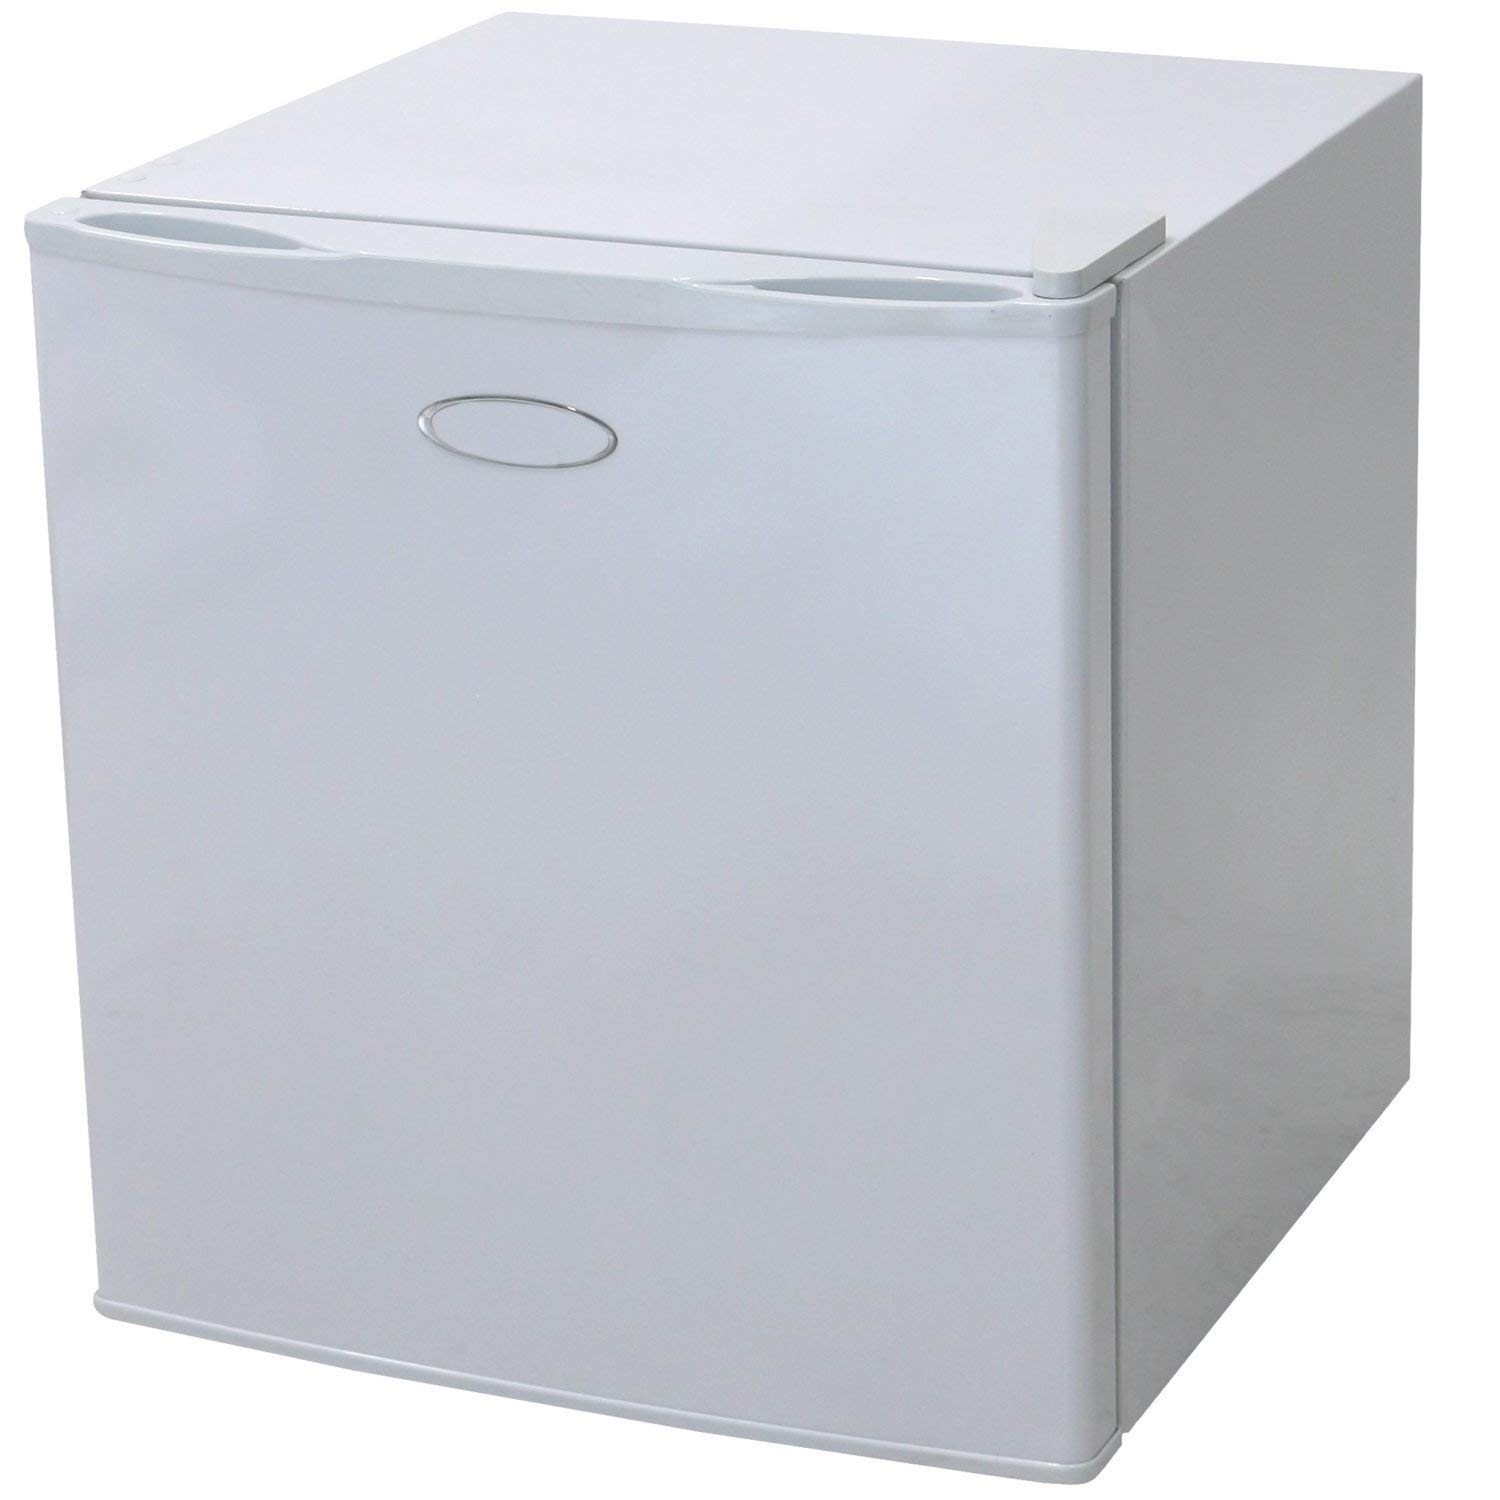 Oypla Electrical Table Top Mini Fridge c/w Chiller Box 48L